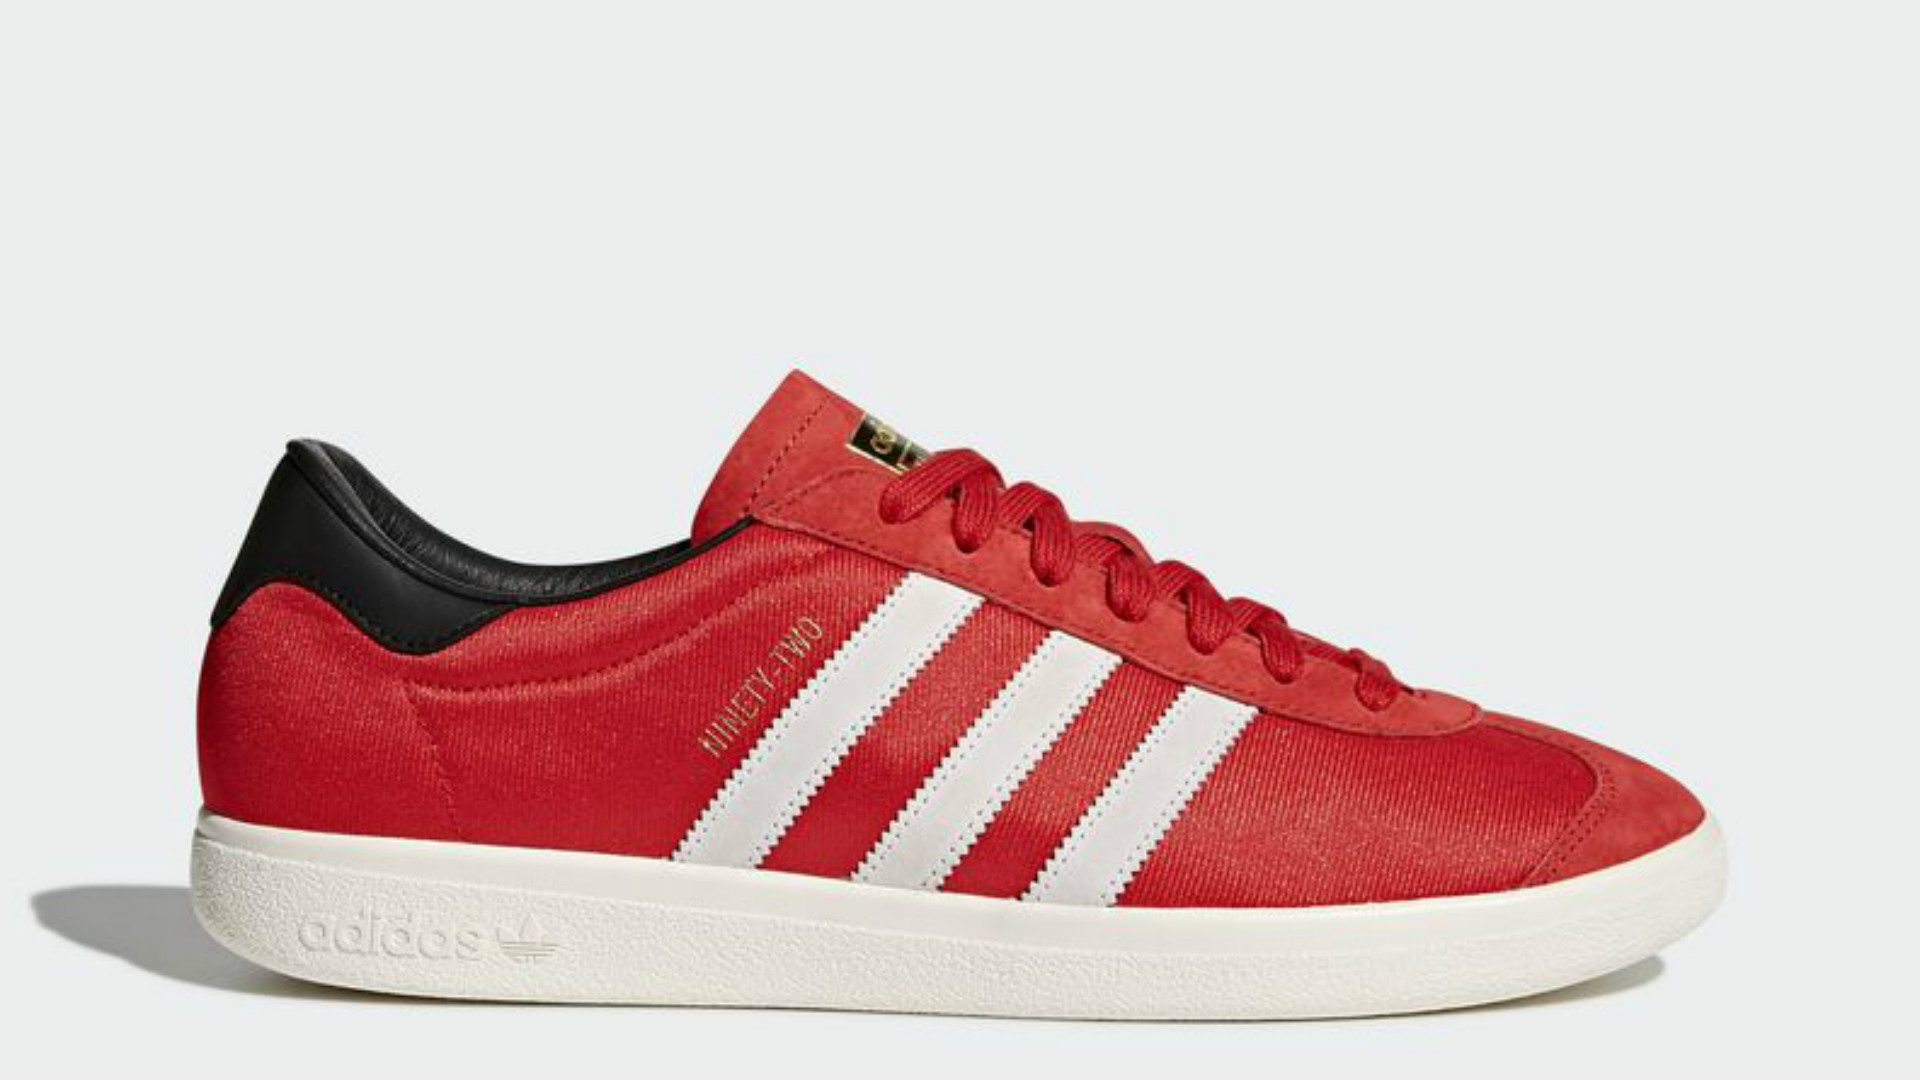 adidas class of 92 sneakers 63% di sconto sglabs.it